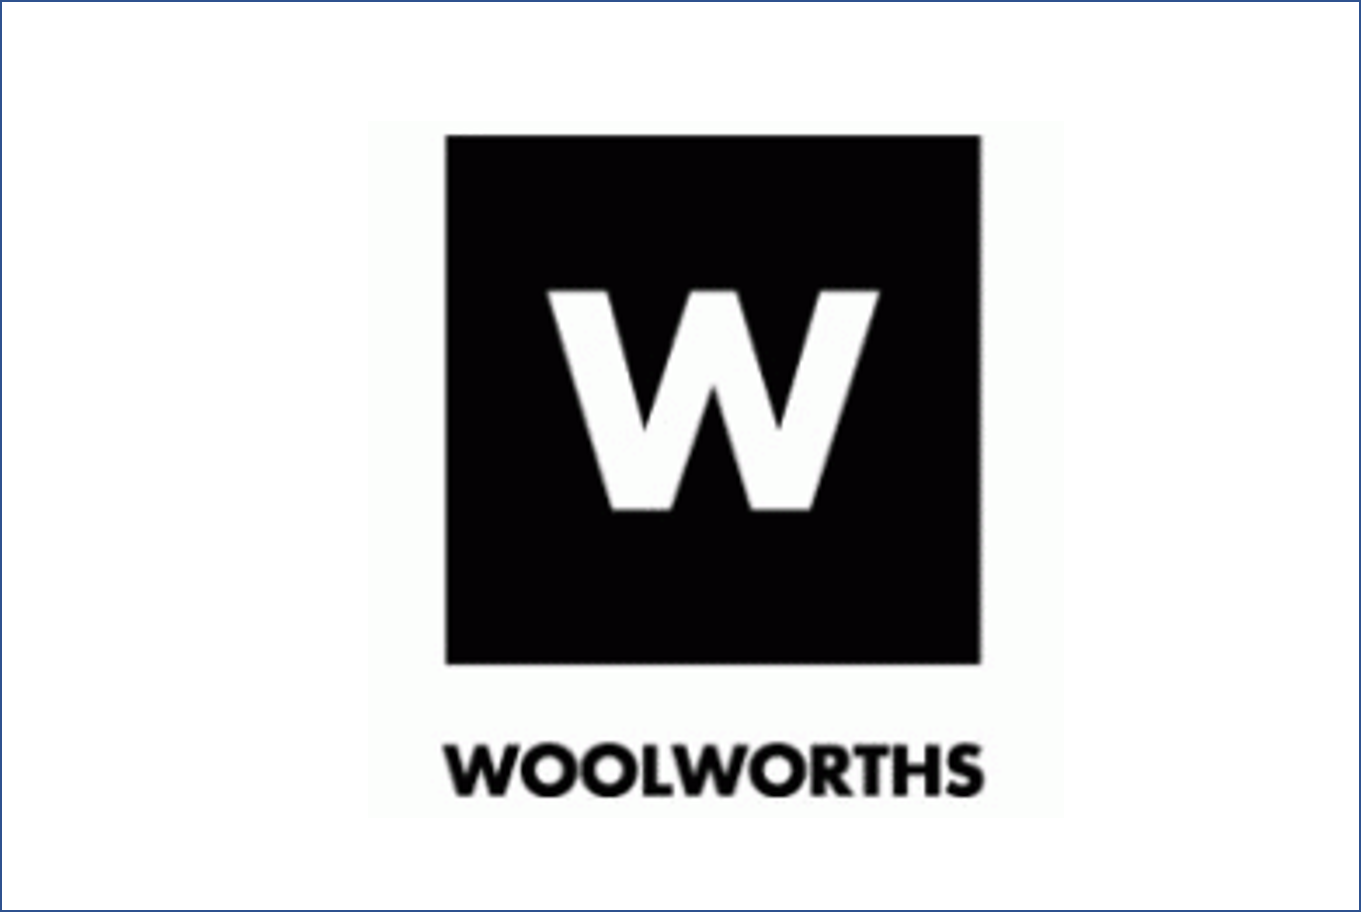 RETAIL CHAIN WOOLWORTHS IMPROVES IN-STORE FULFILLMENT WITH HIGHJUMP